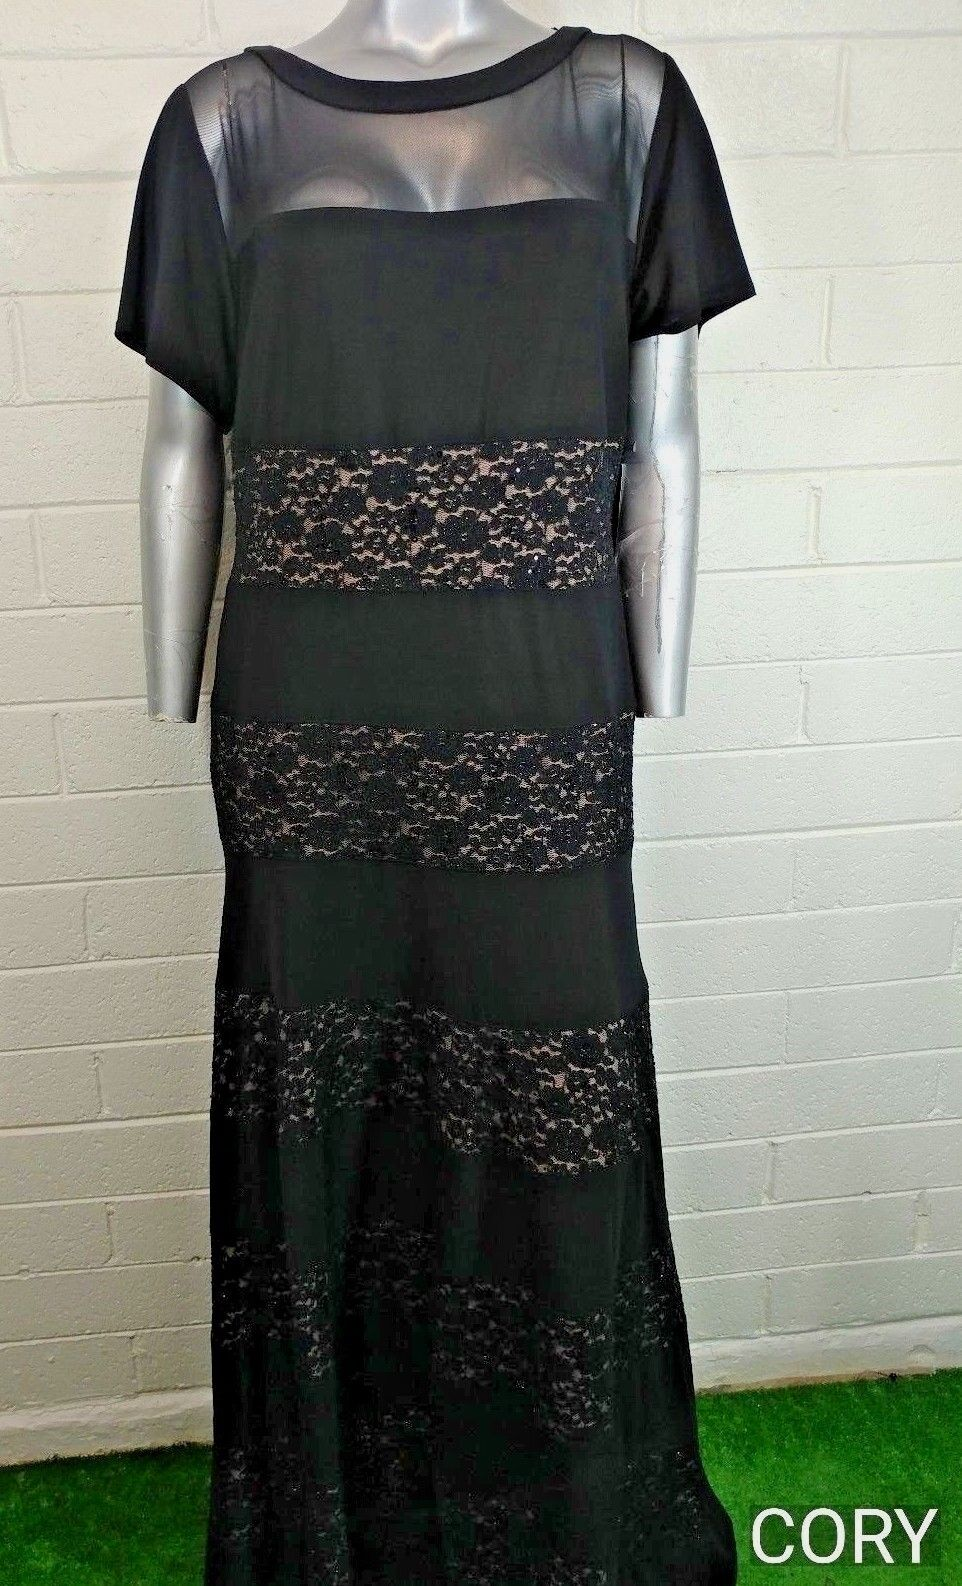 Plus women's R&M RICHARDS DRESS Size 22W OCCASION embellished lace tulle NWT